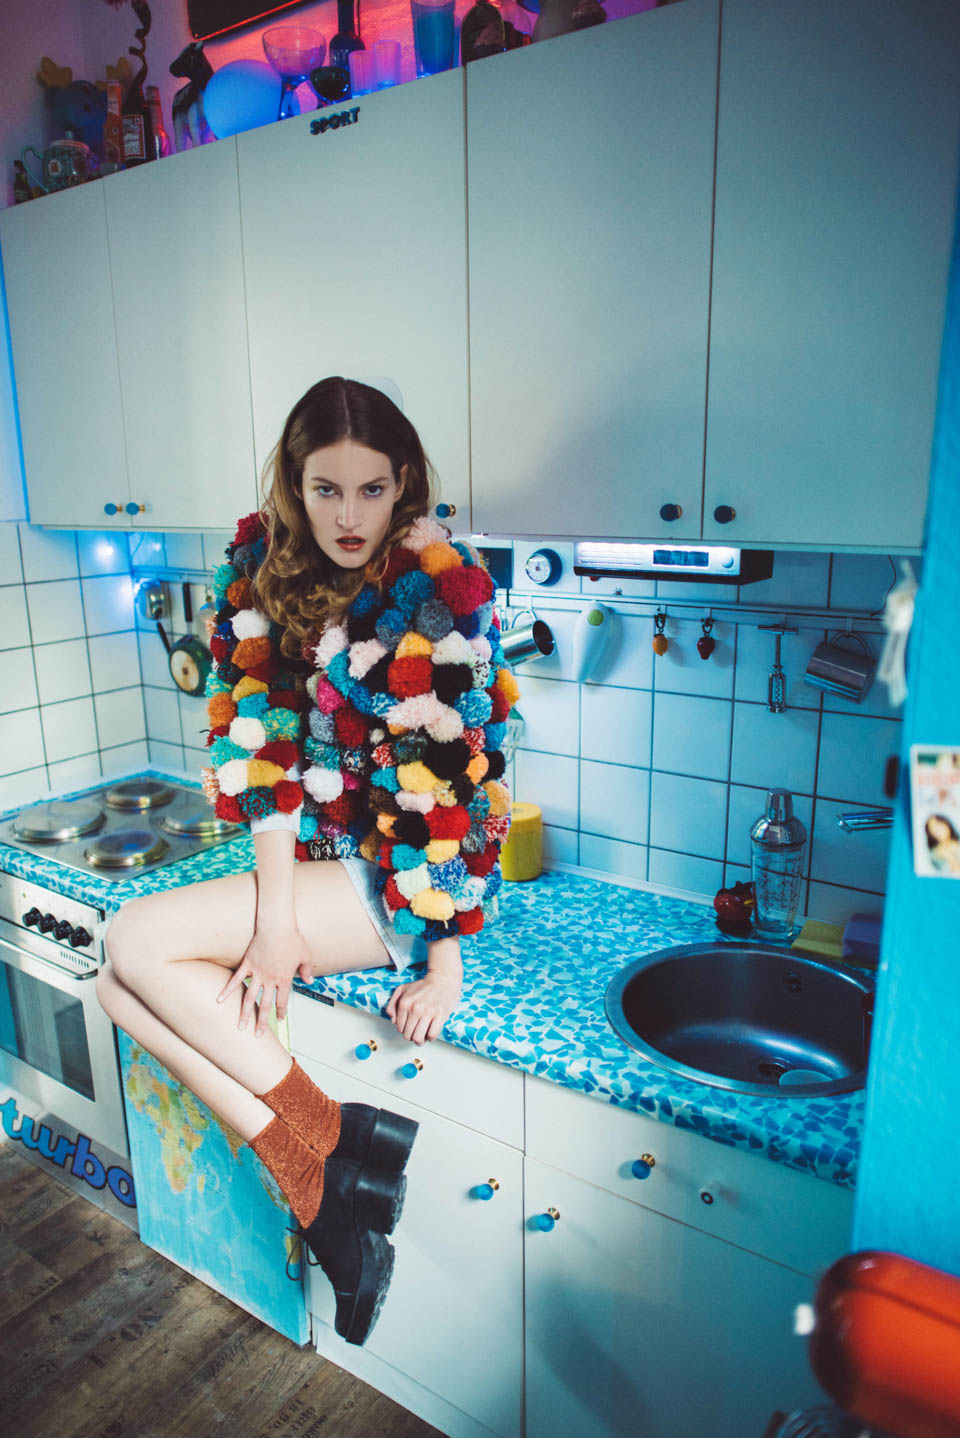 fashion editorial for cake magazine shot in cologne germany by fashion photographer erika astrid_22.jpg